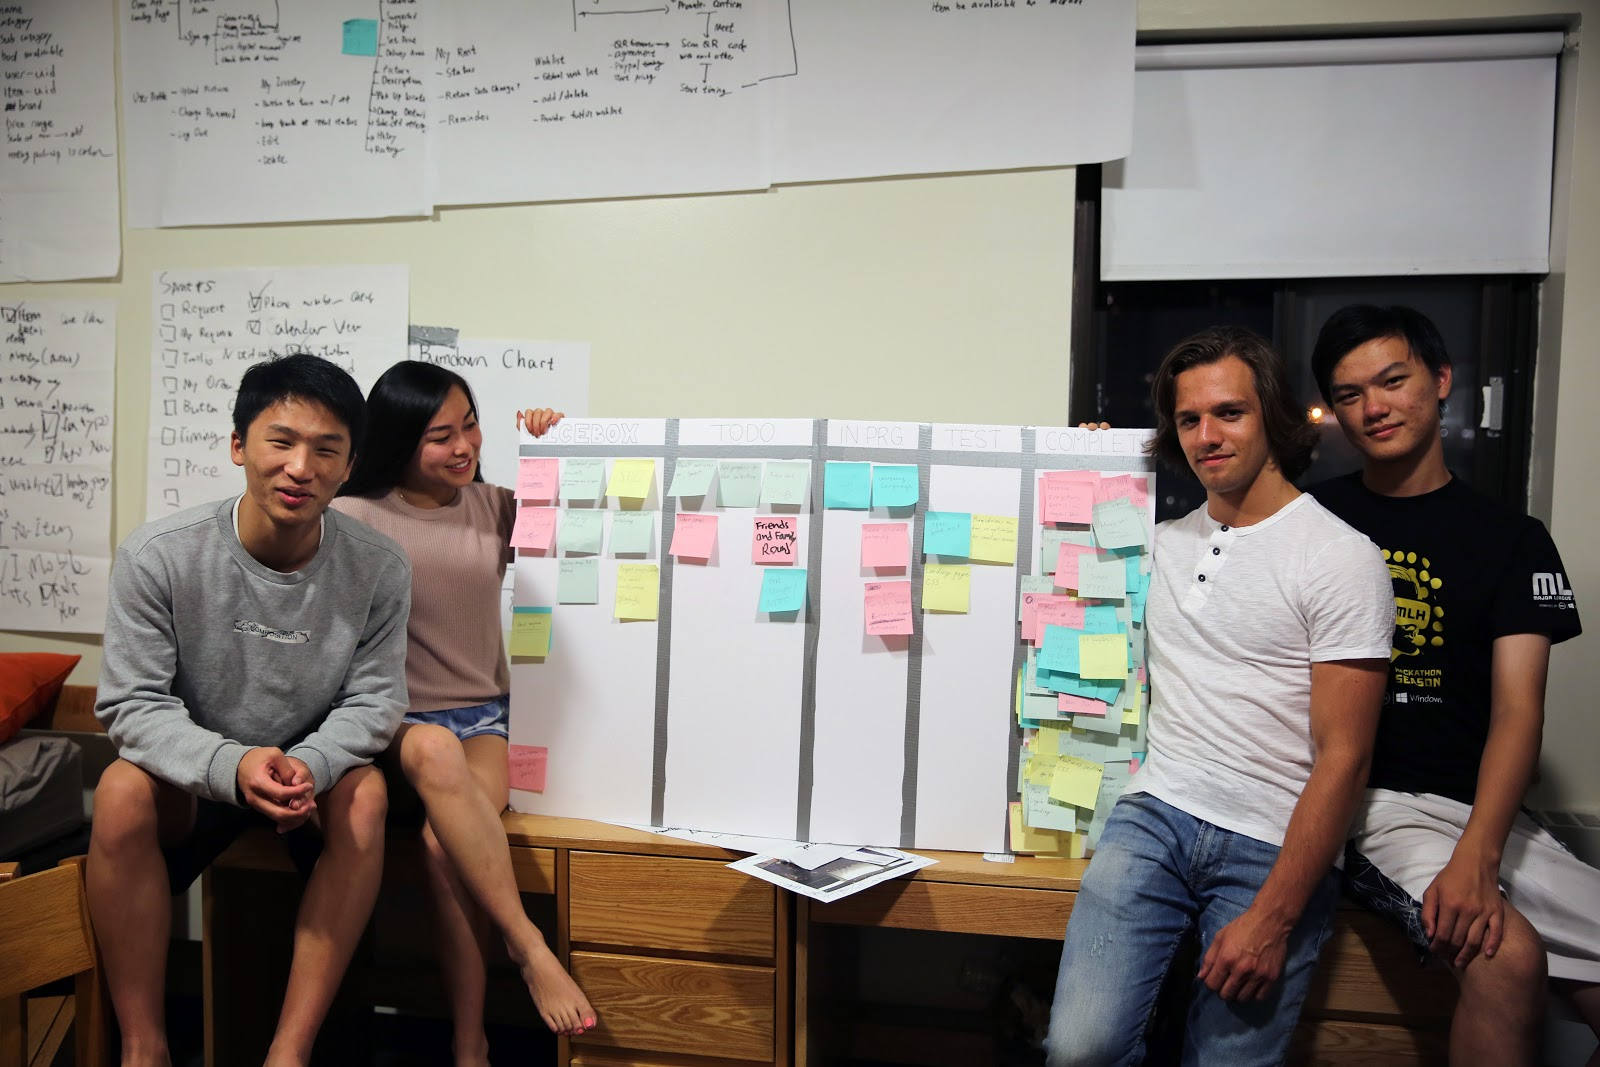 Spare startup team with their Scrum board